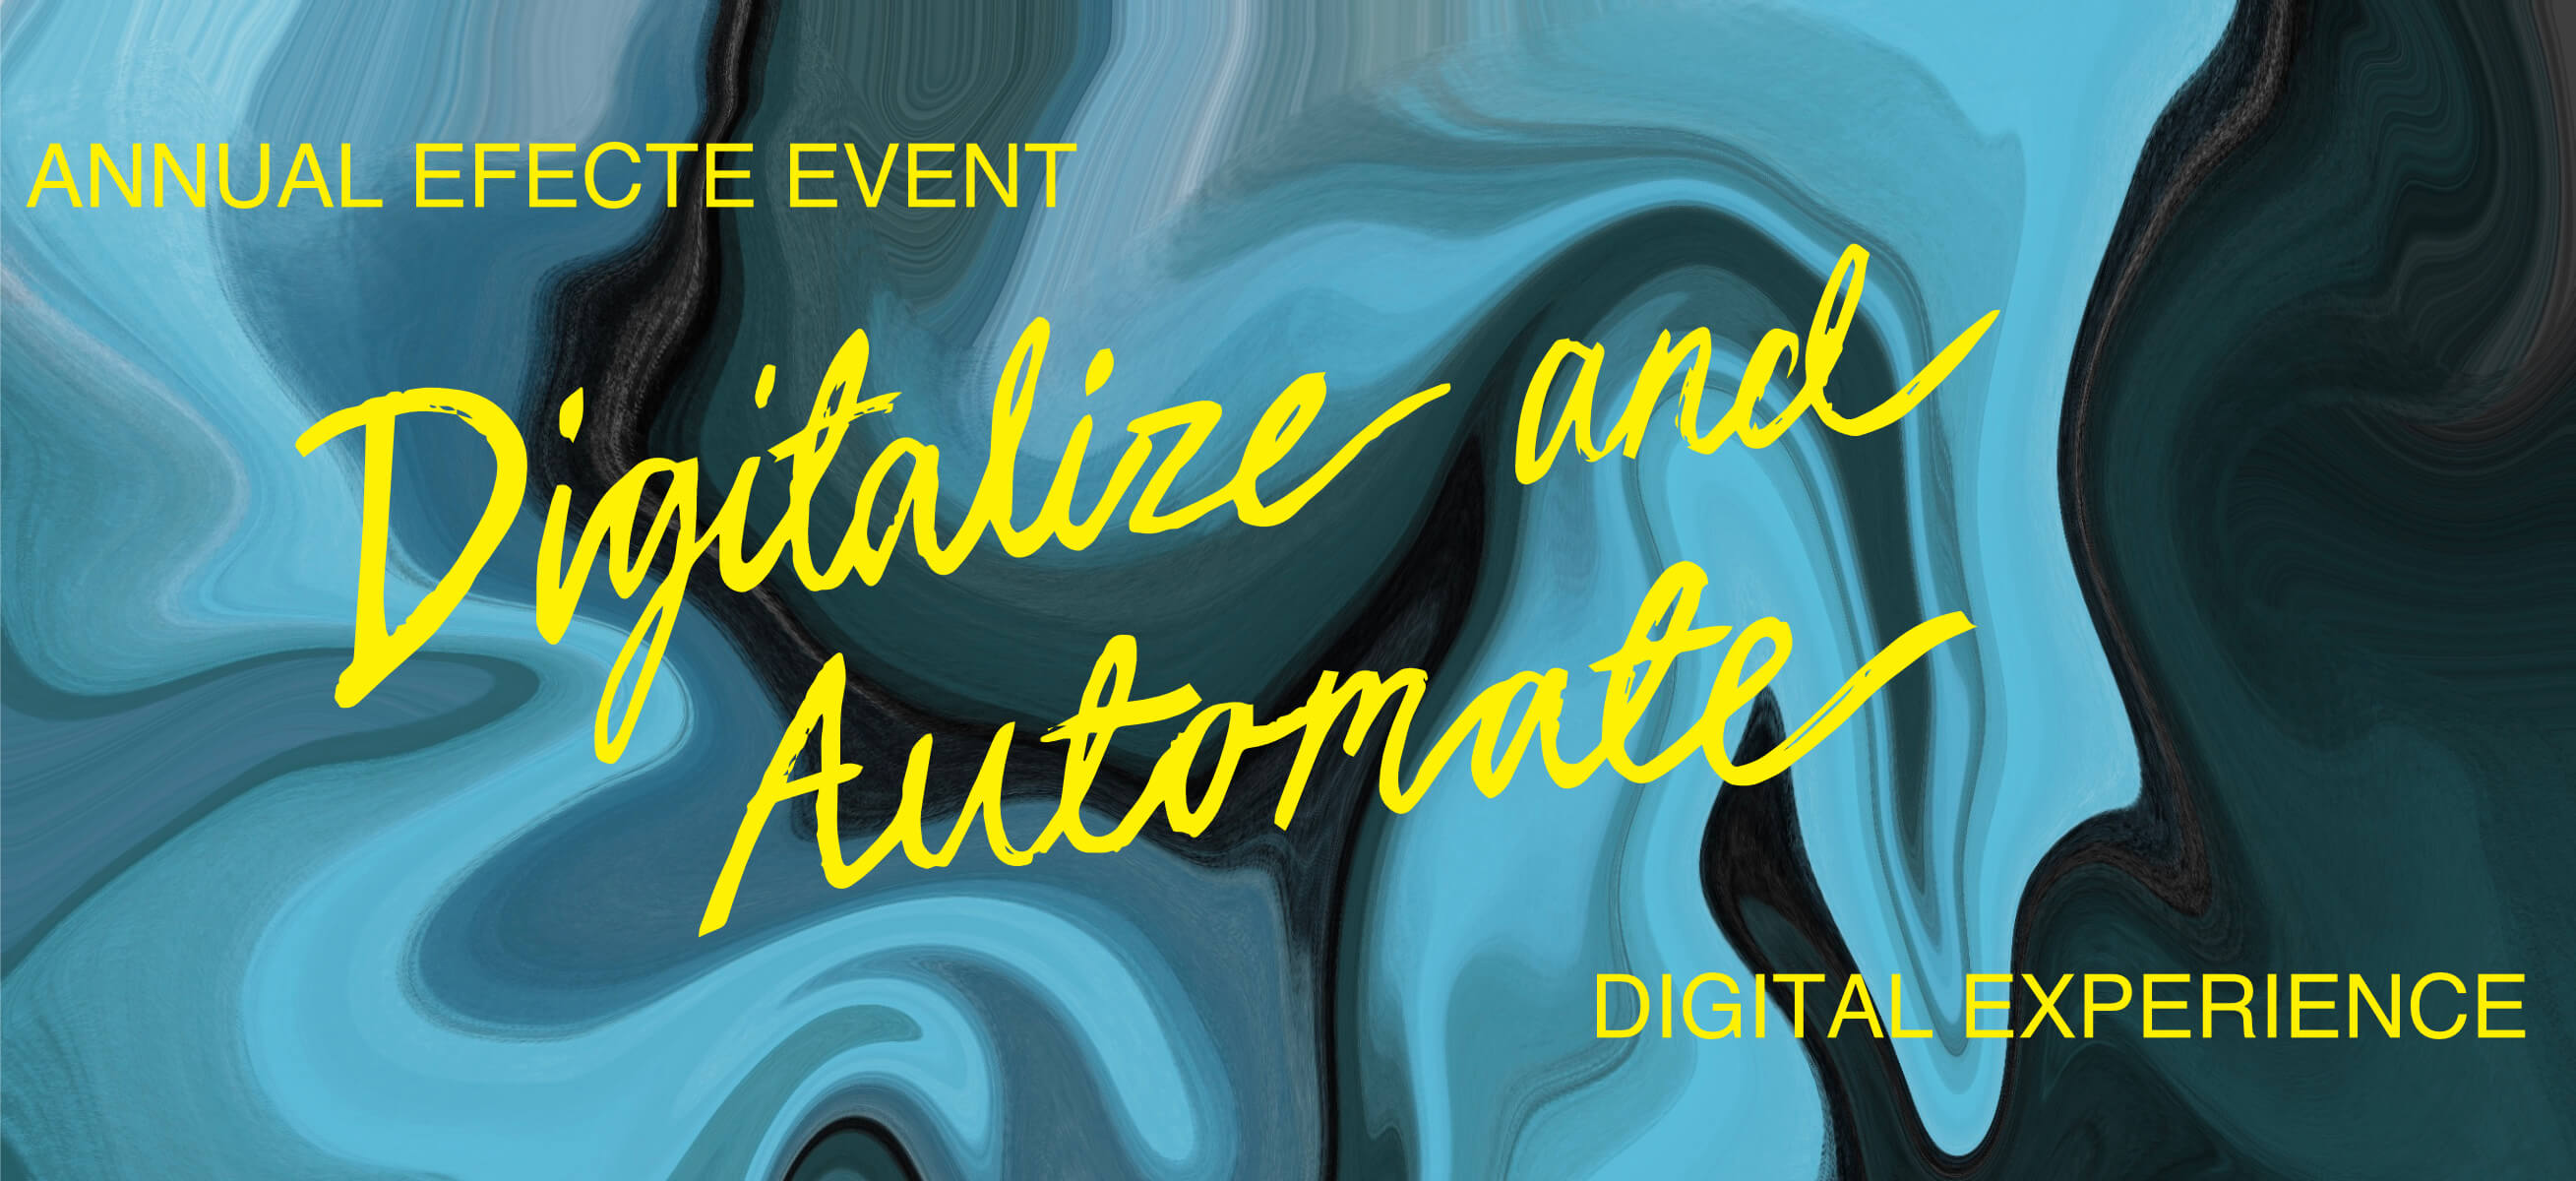 Digitalize and Automate - logo - background (2)